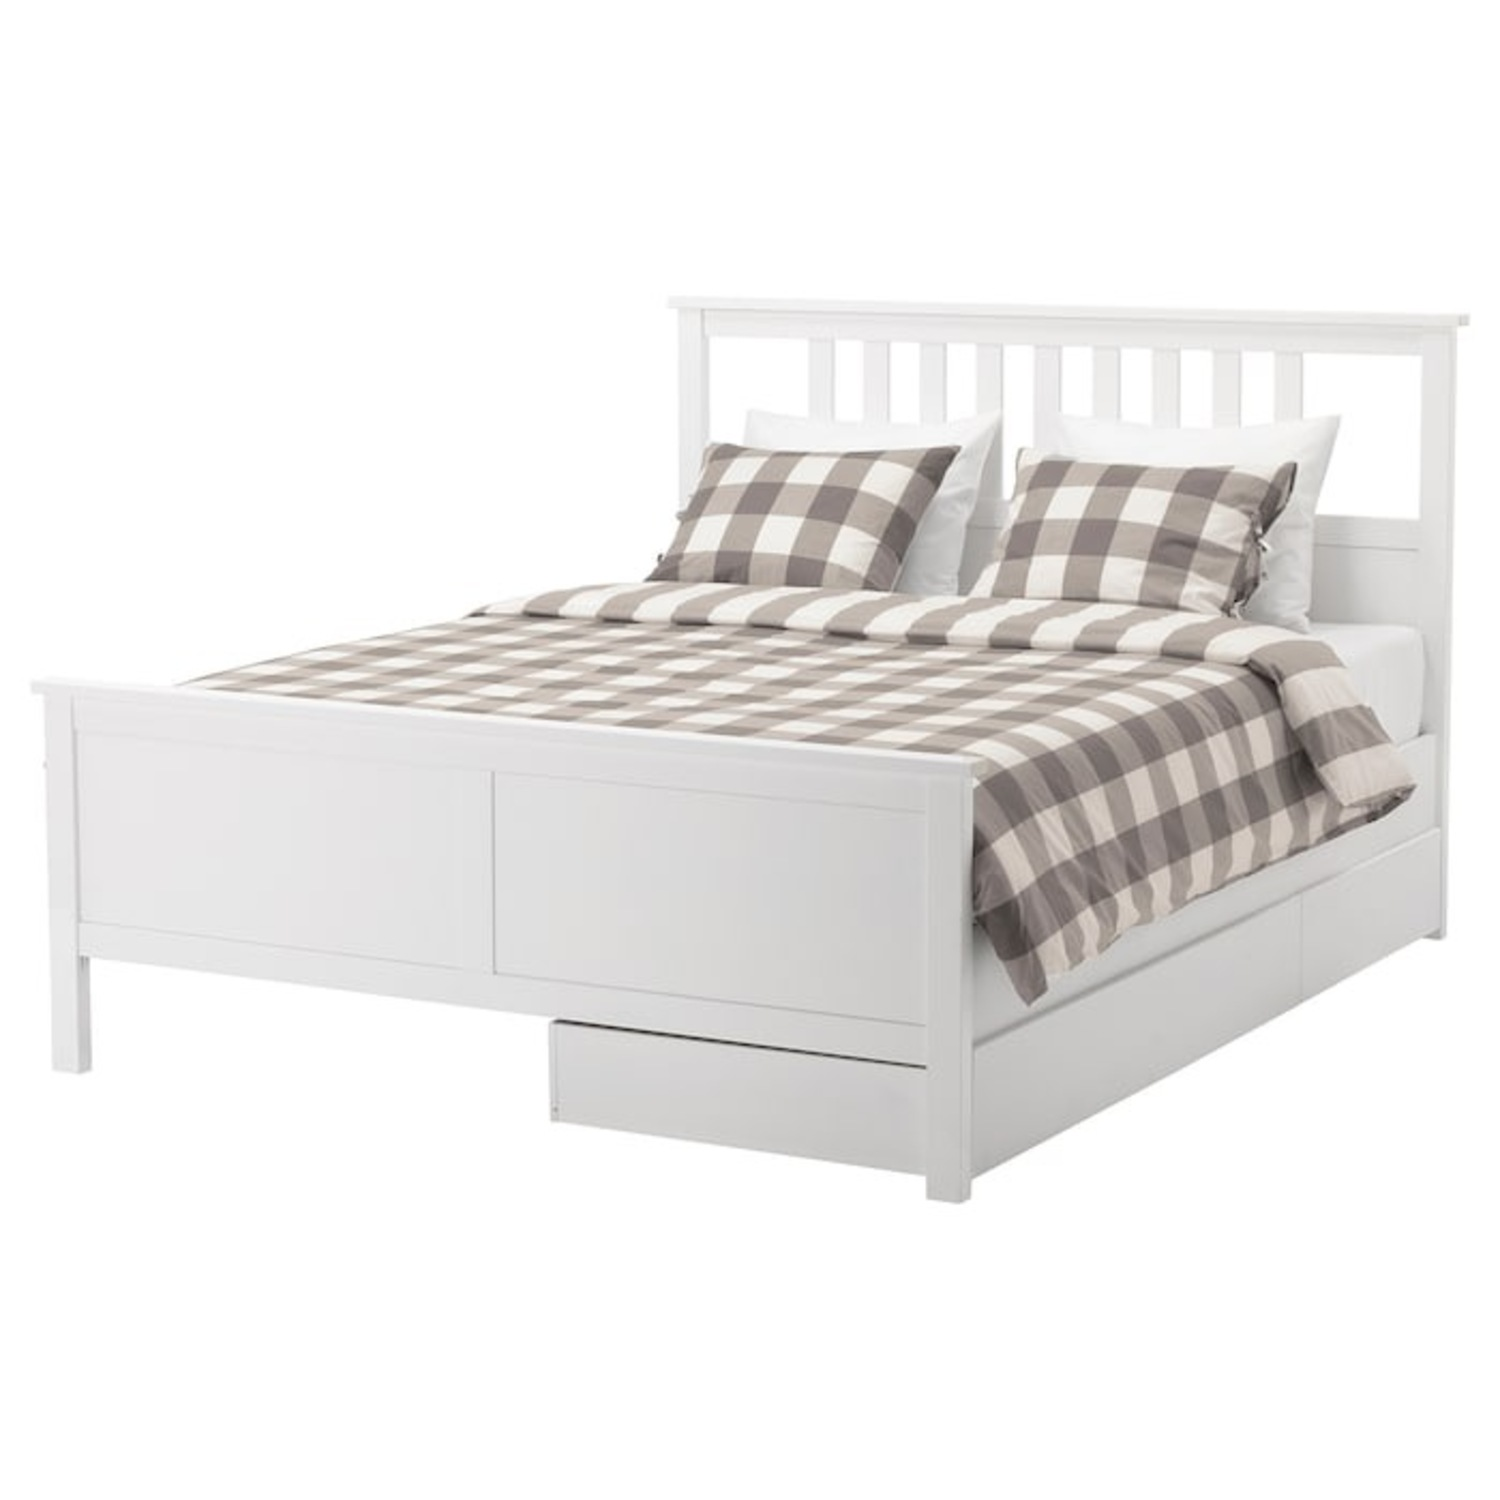 IKEA Hemnes Queen Bed - image-5